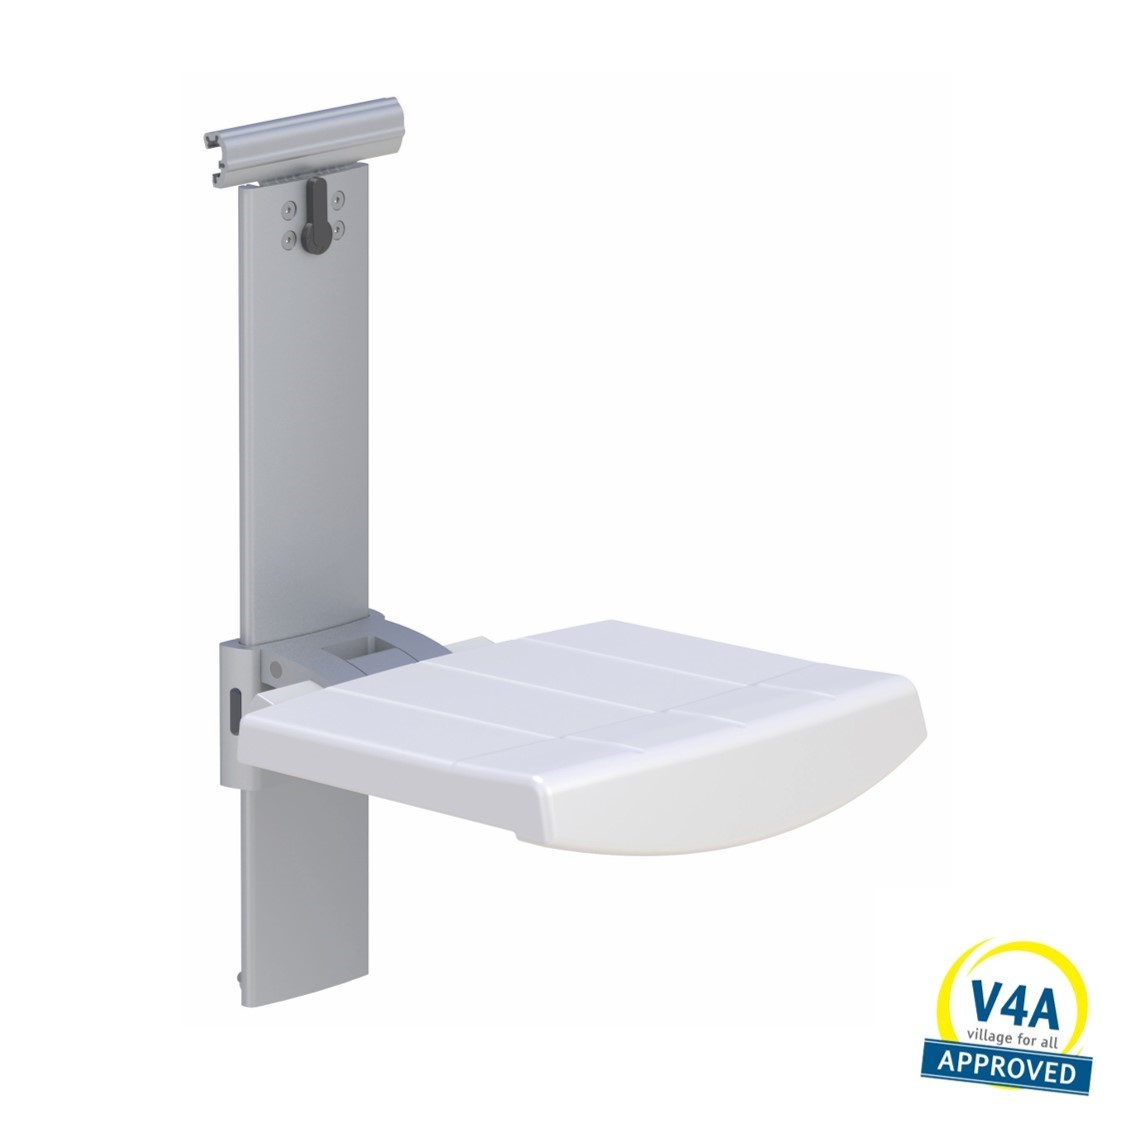 Shower seat for horizontal track height and sideways adjustable